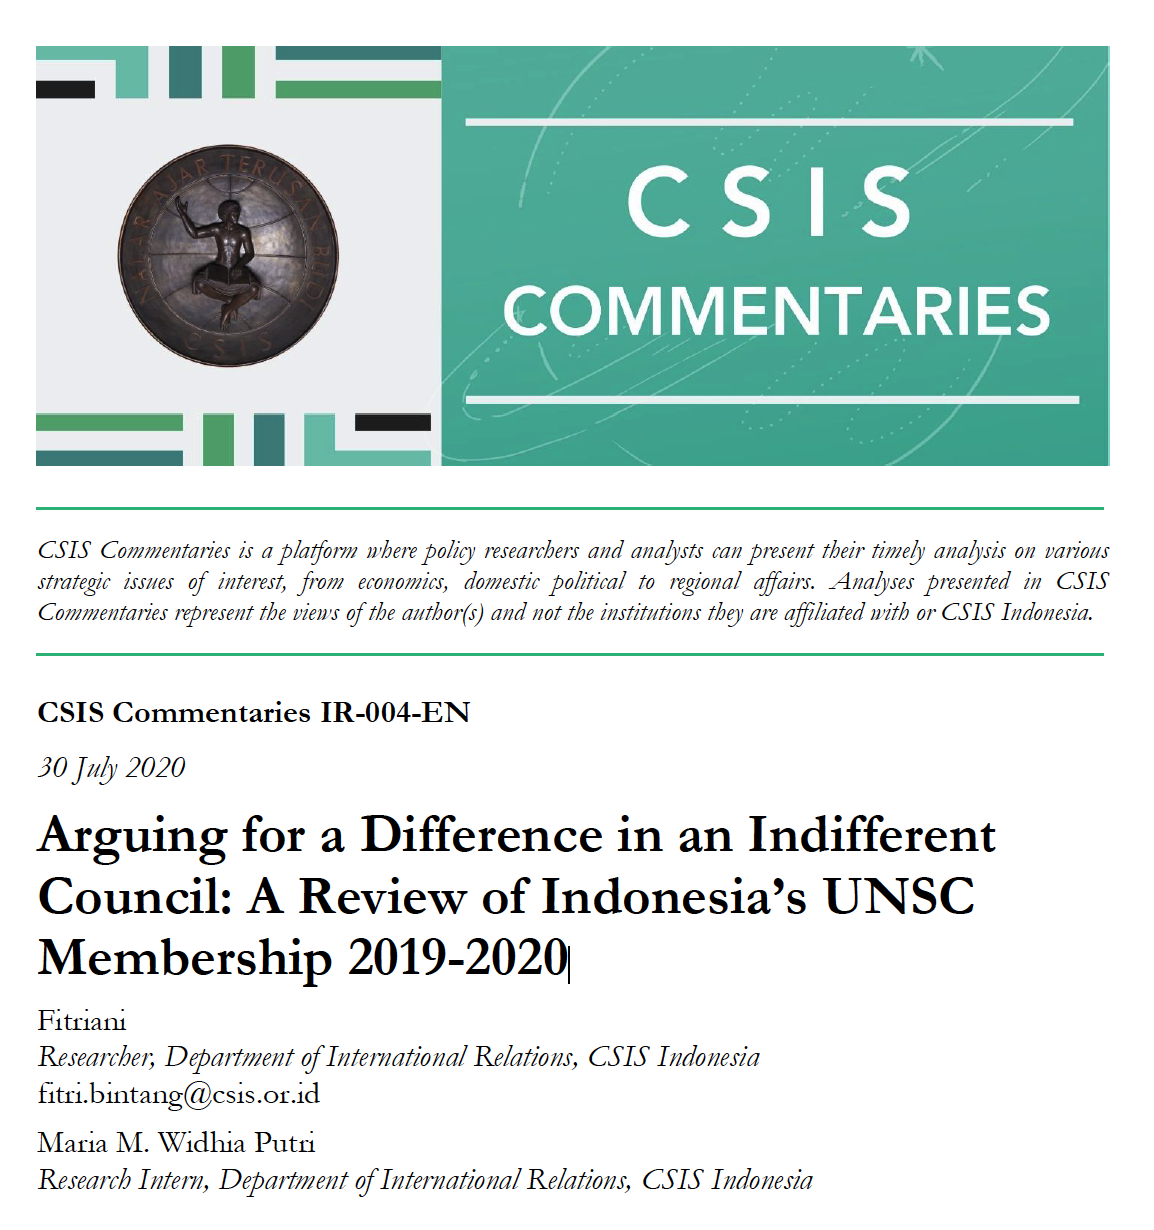 Arguing for a Difference in an Indifferent Council: A Review of Indonesia's UNSC Membership 2019-2020